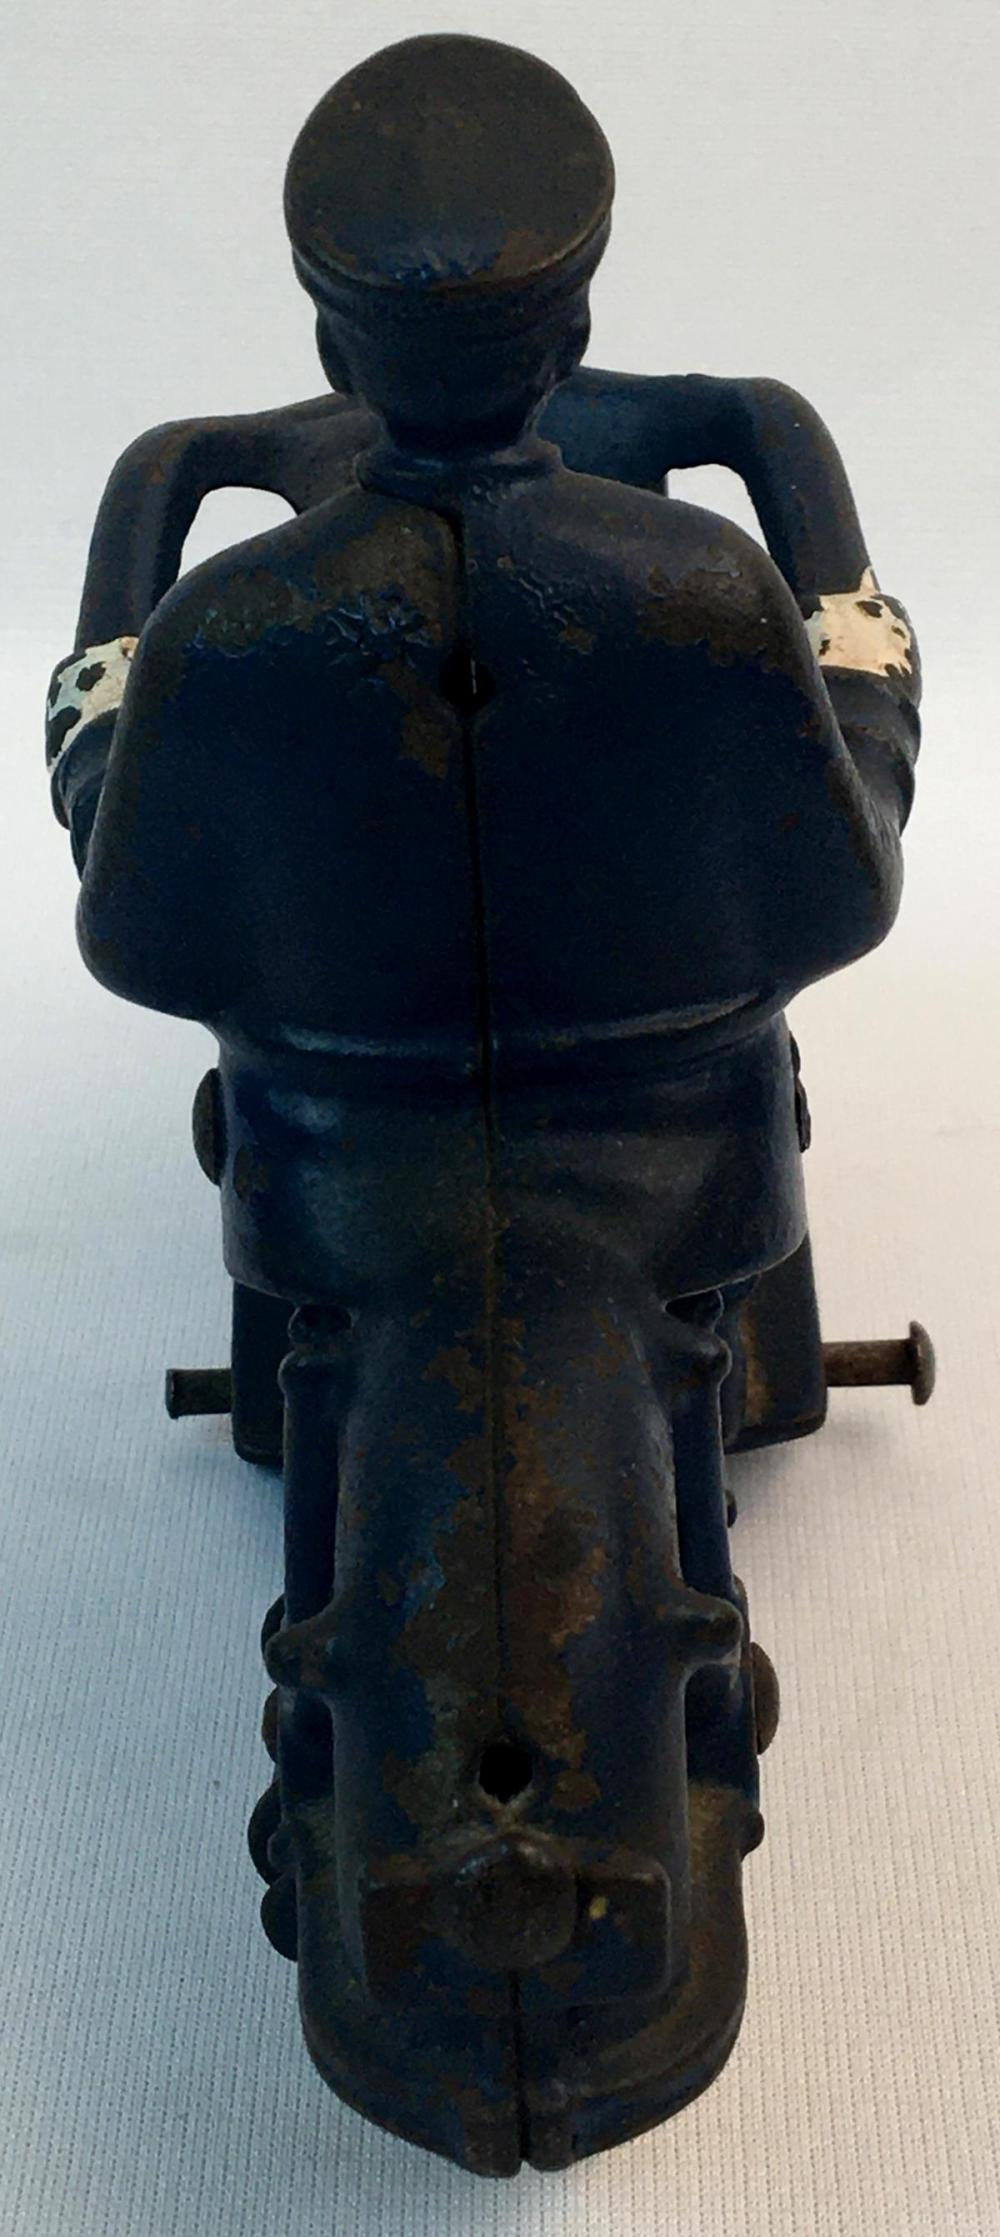 Antique 1930's Hubley Cast Iron Champion Blue Police Motorcycle w/ White Rubber Tires 7